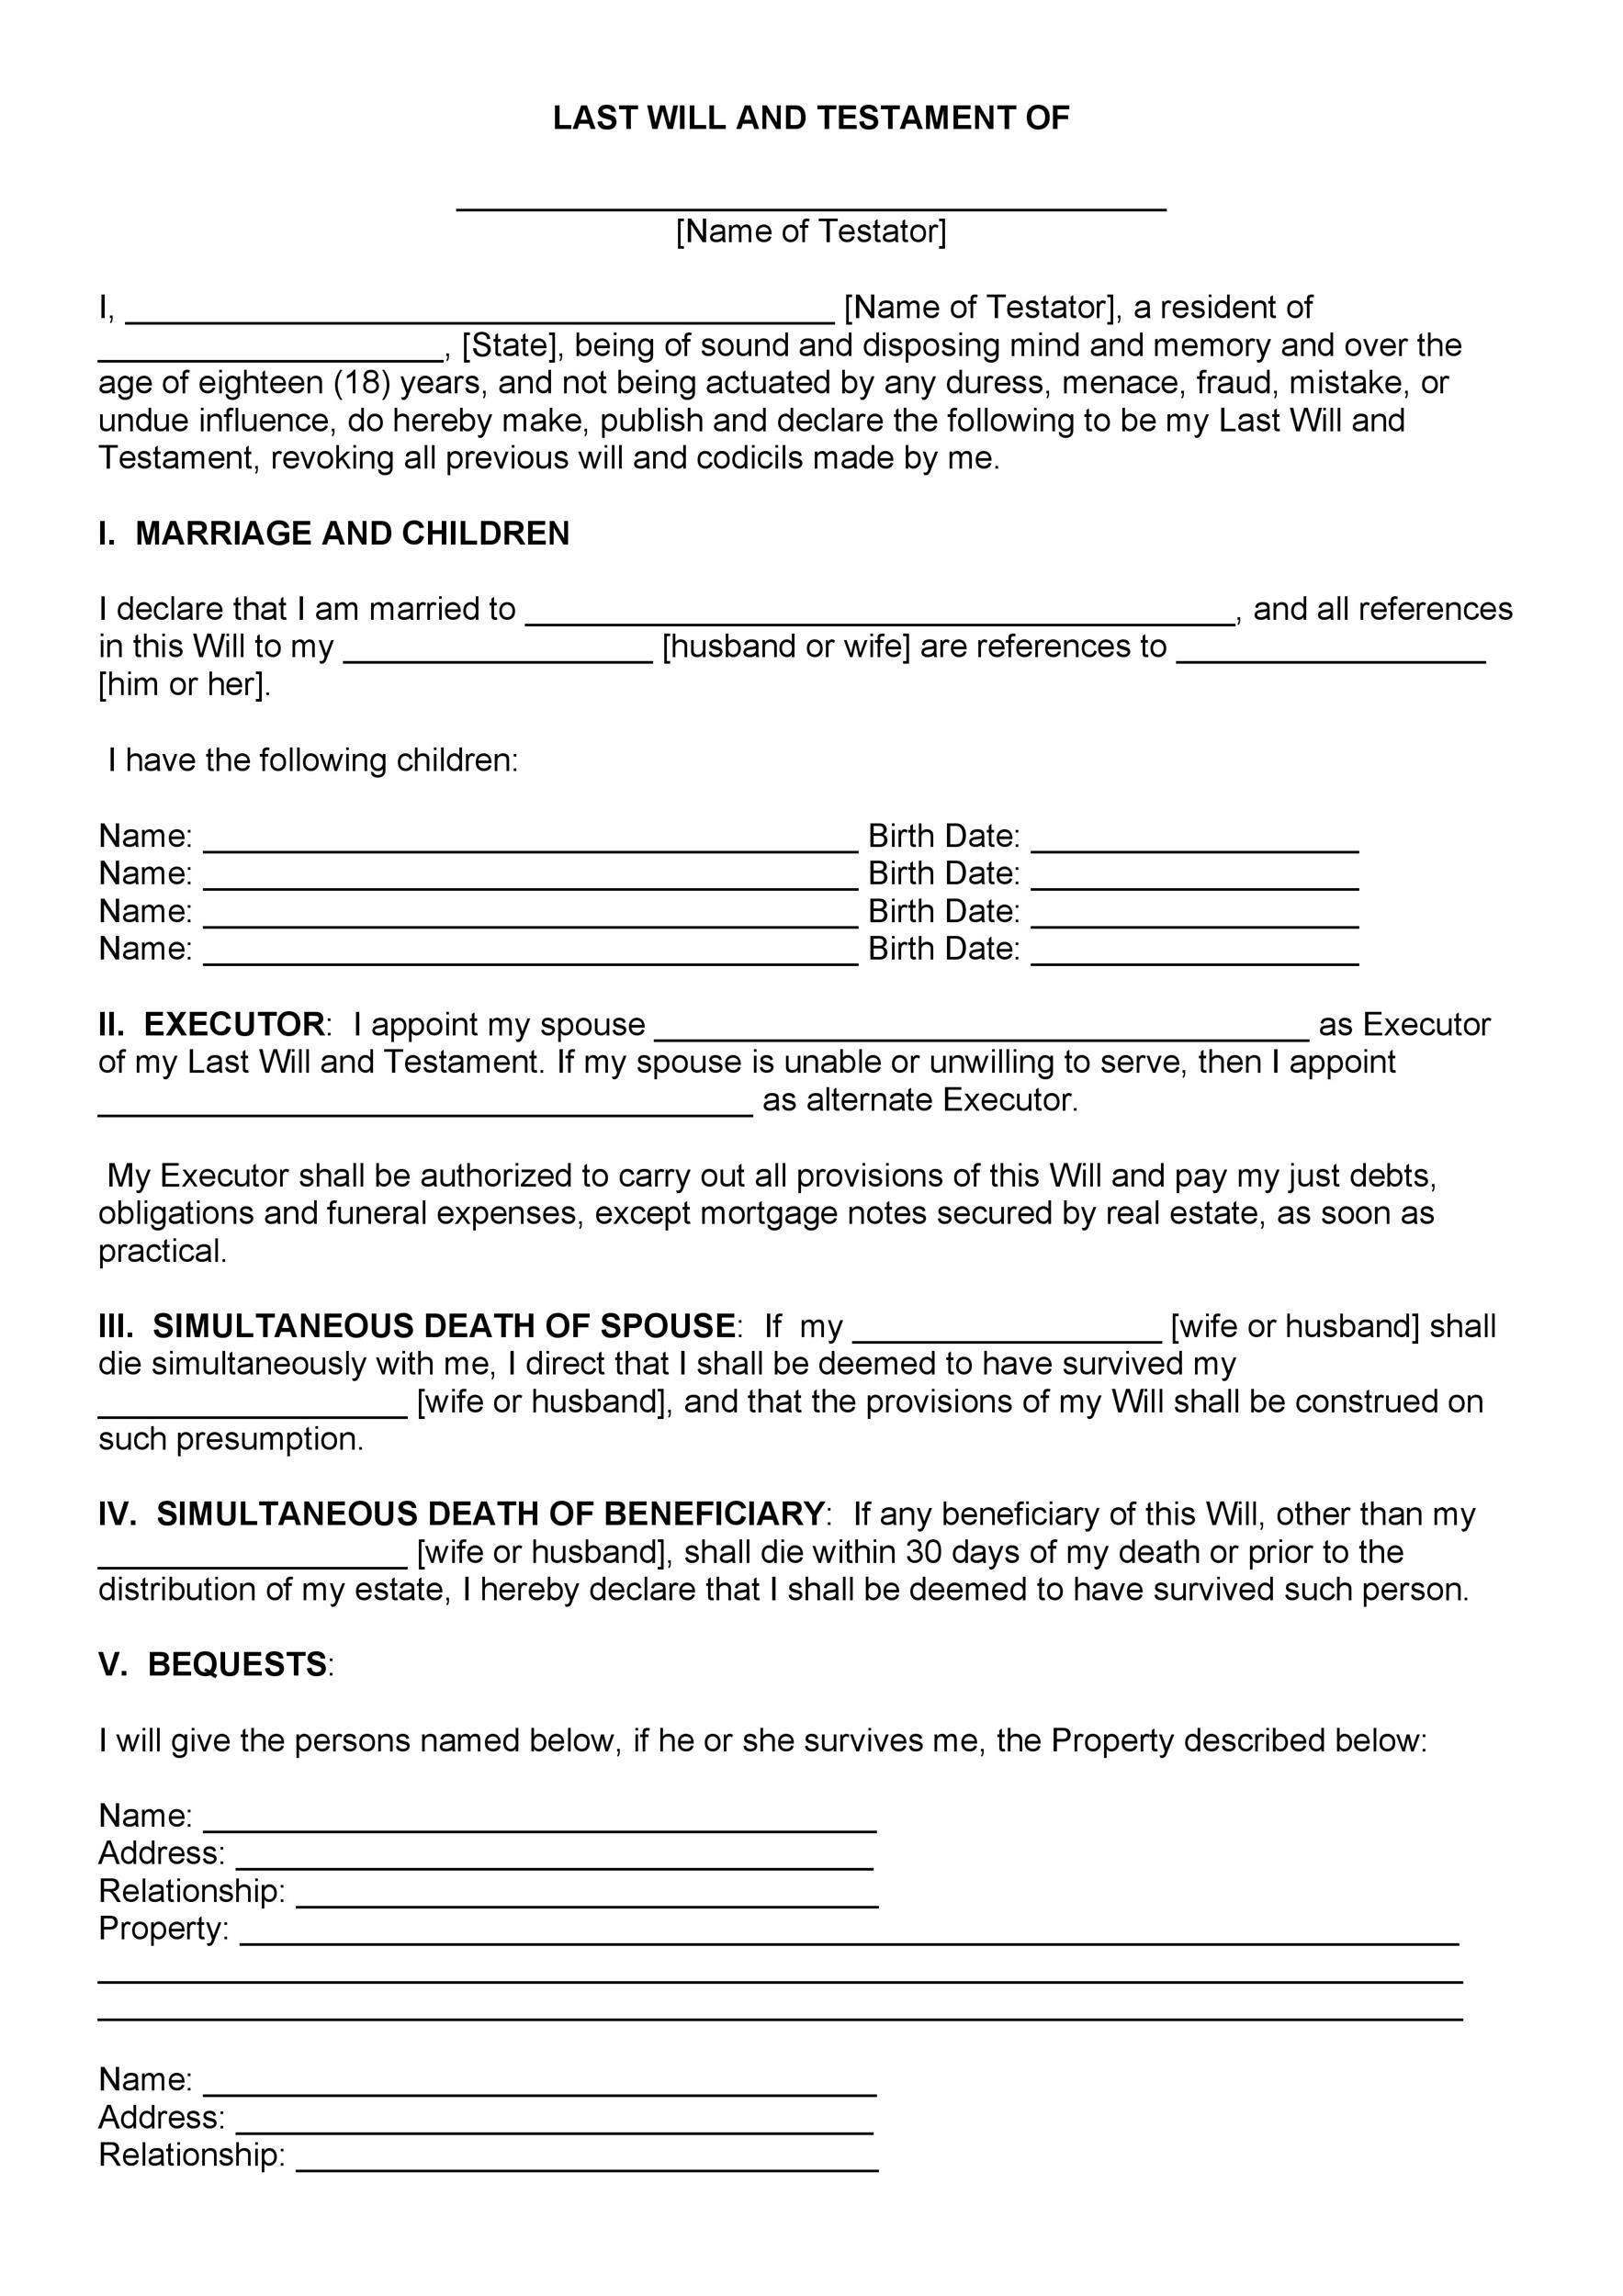 Last Will And Testament Forms Templates Template Lab - Final will and testament template